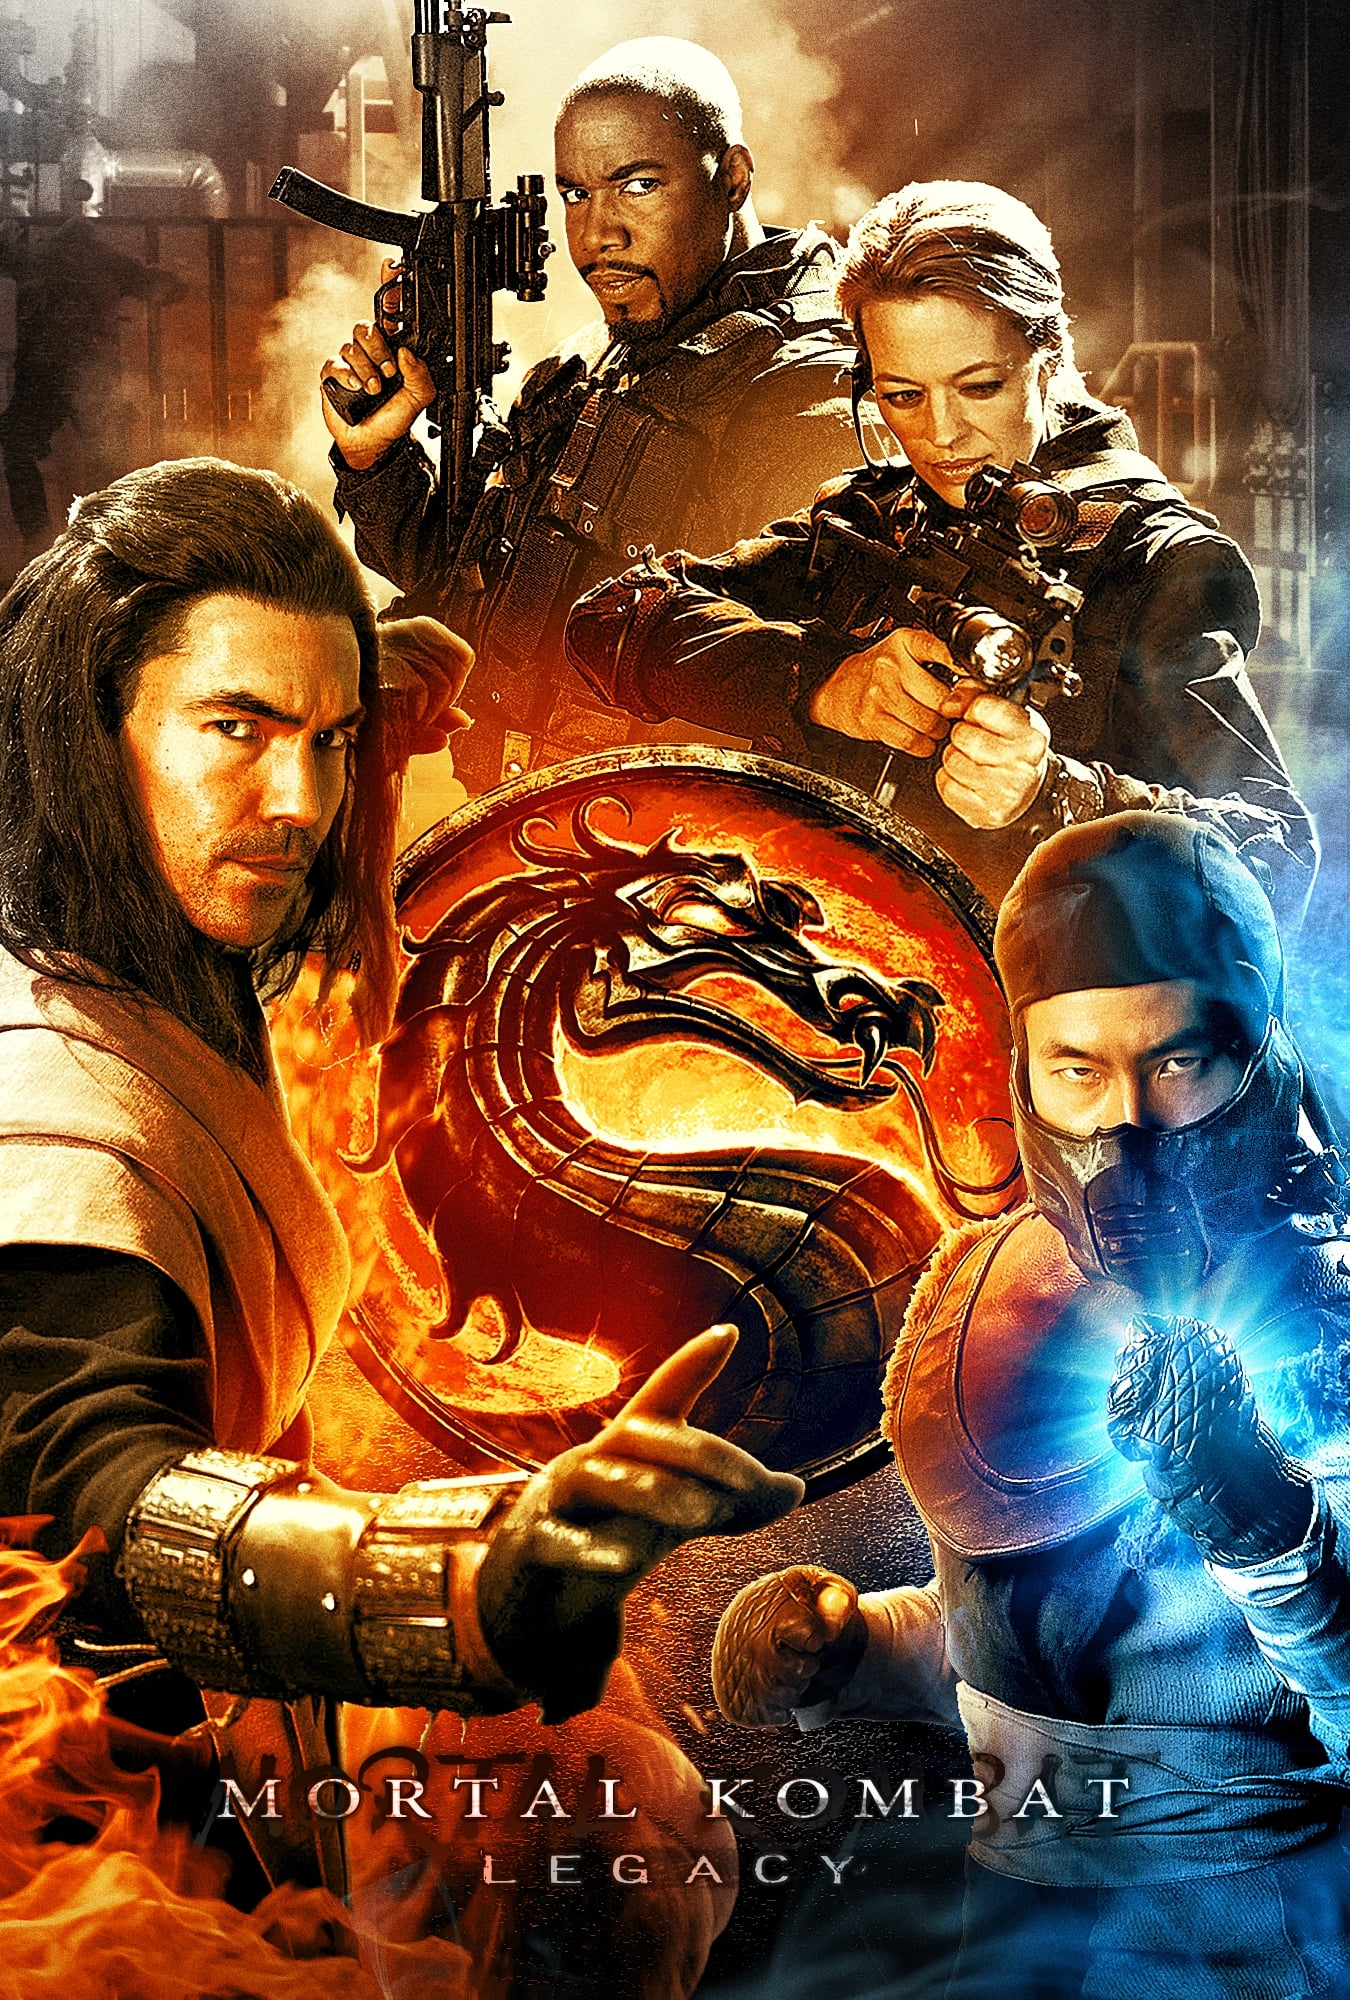 Mortal Kombat Legacy German